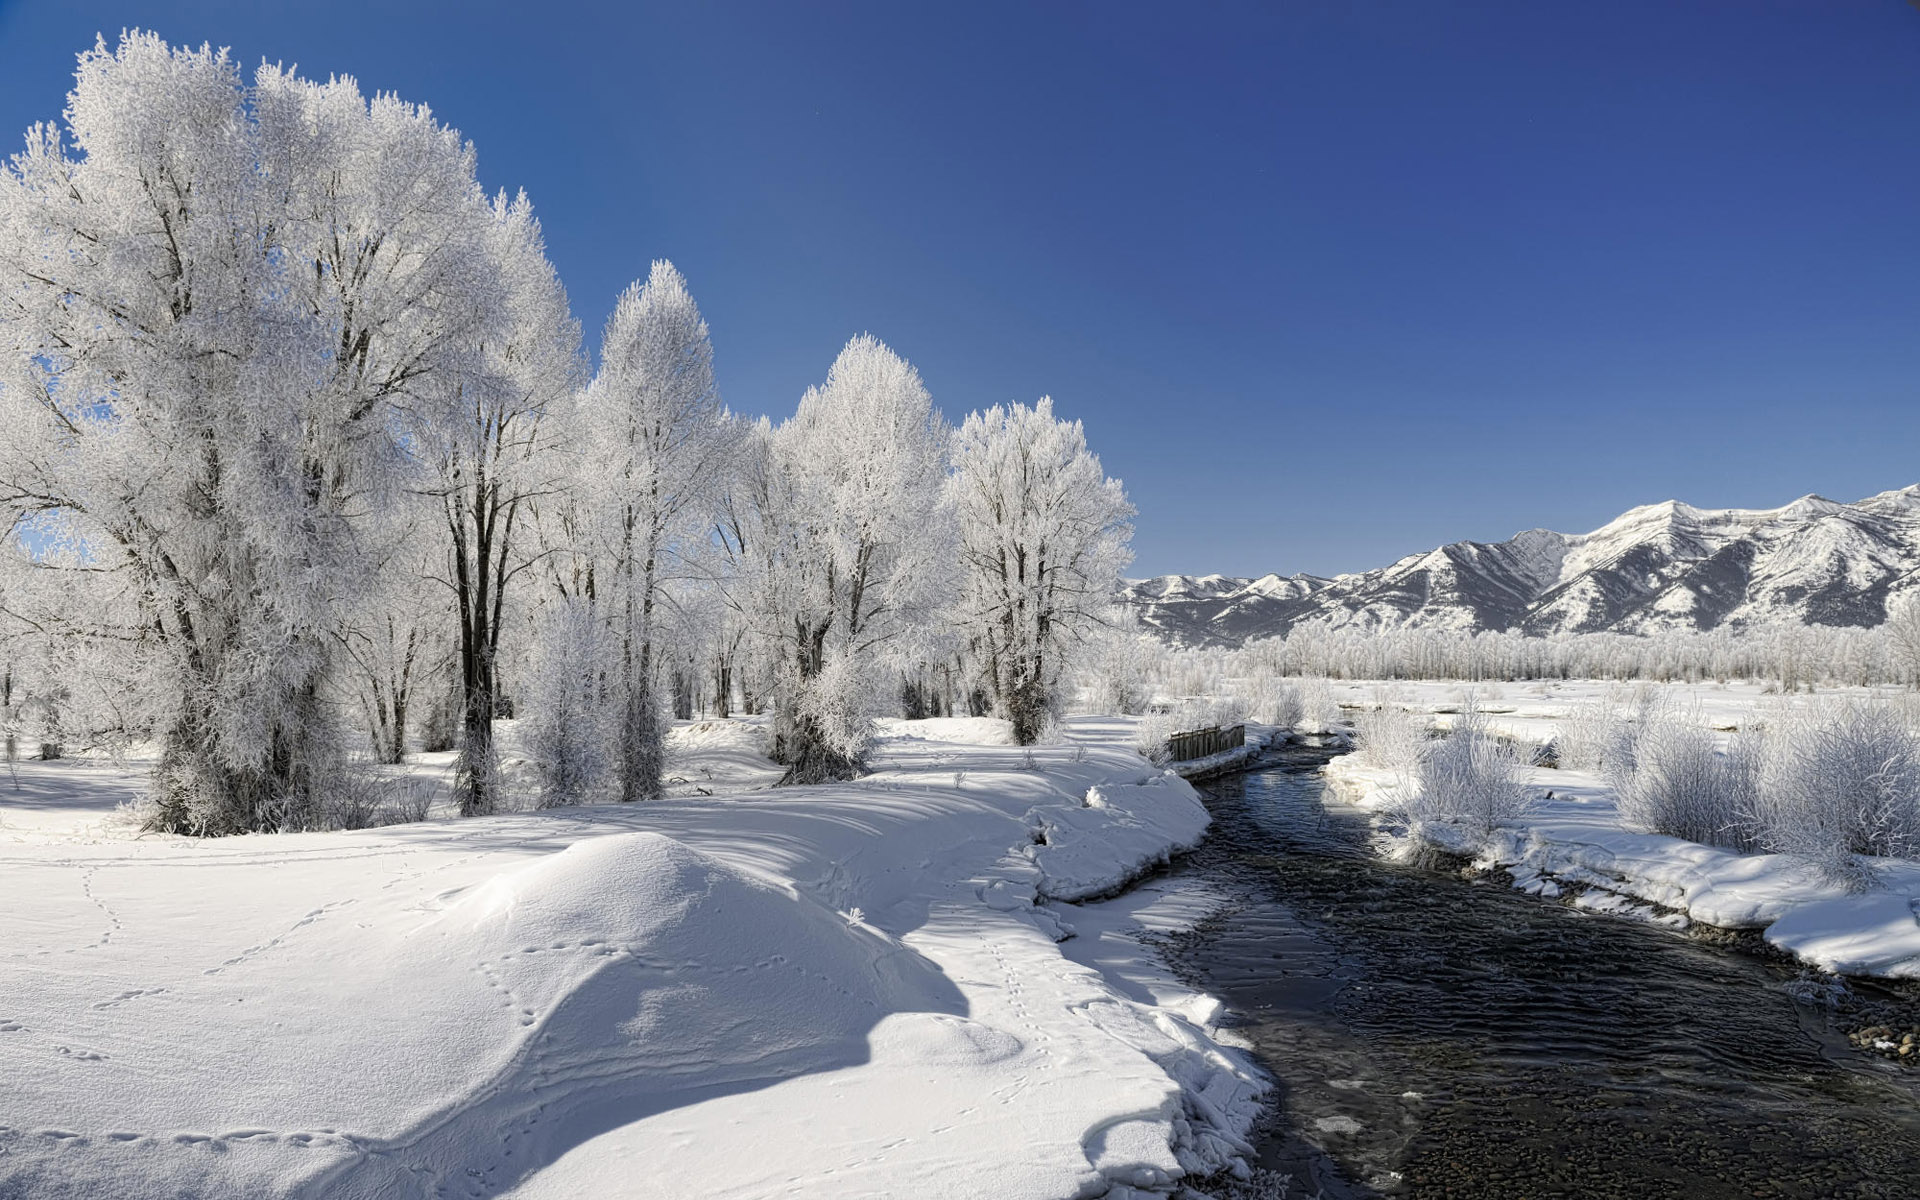 Winter trees creek snowy plant wallpapers winter trees creek snowy image winter trees creek snowy plant wallpapers and stock photos voltagebd Image collections